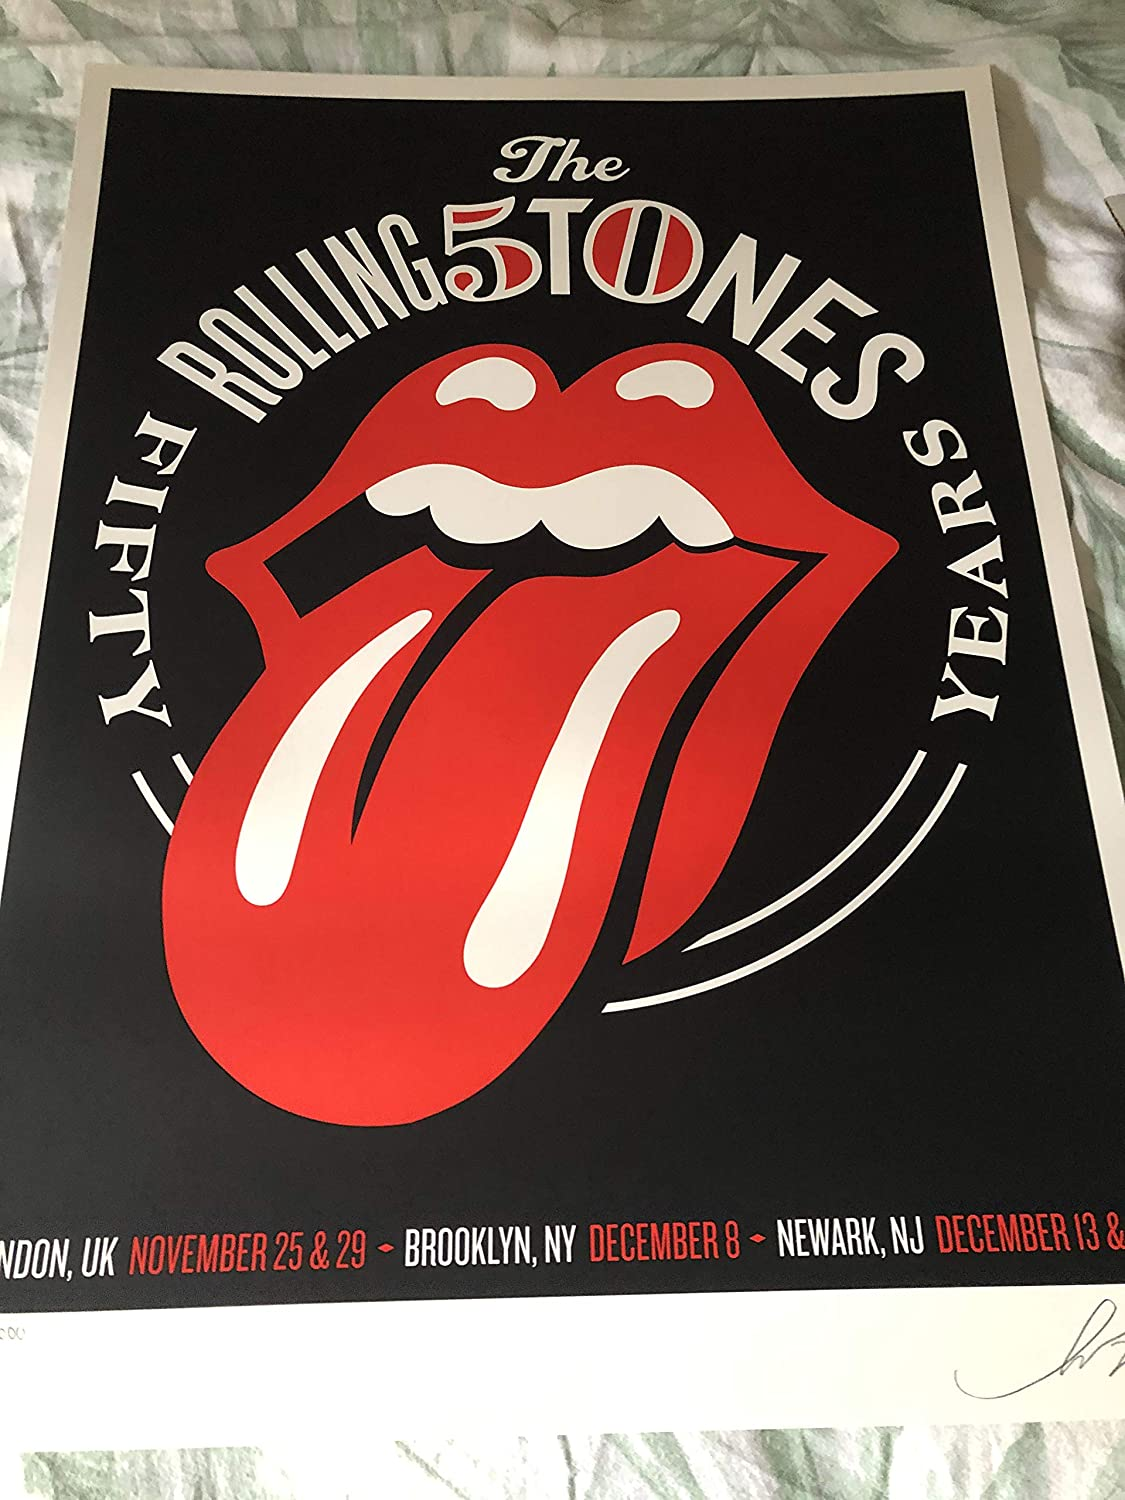 Rolling Inexpensive Stones 50th Anniversary Poster Ori Shepard 638 Fairey Sale special price LE